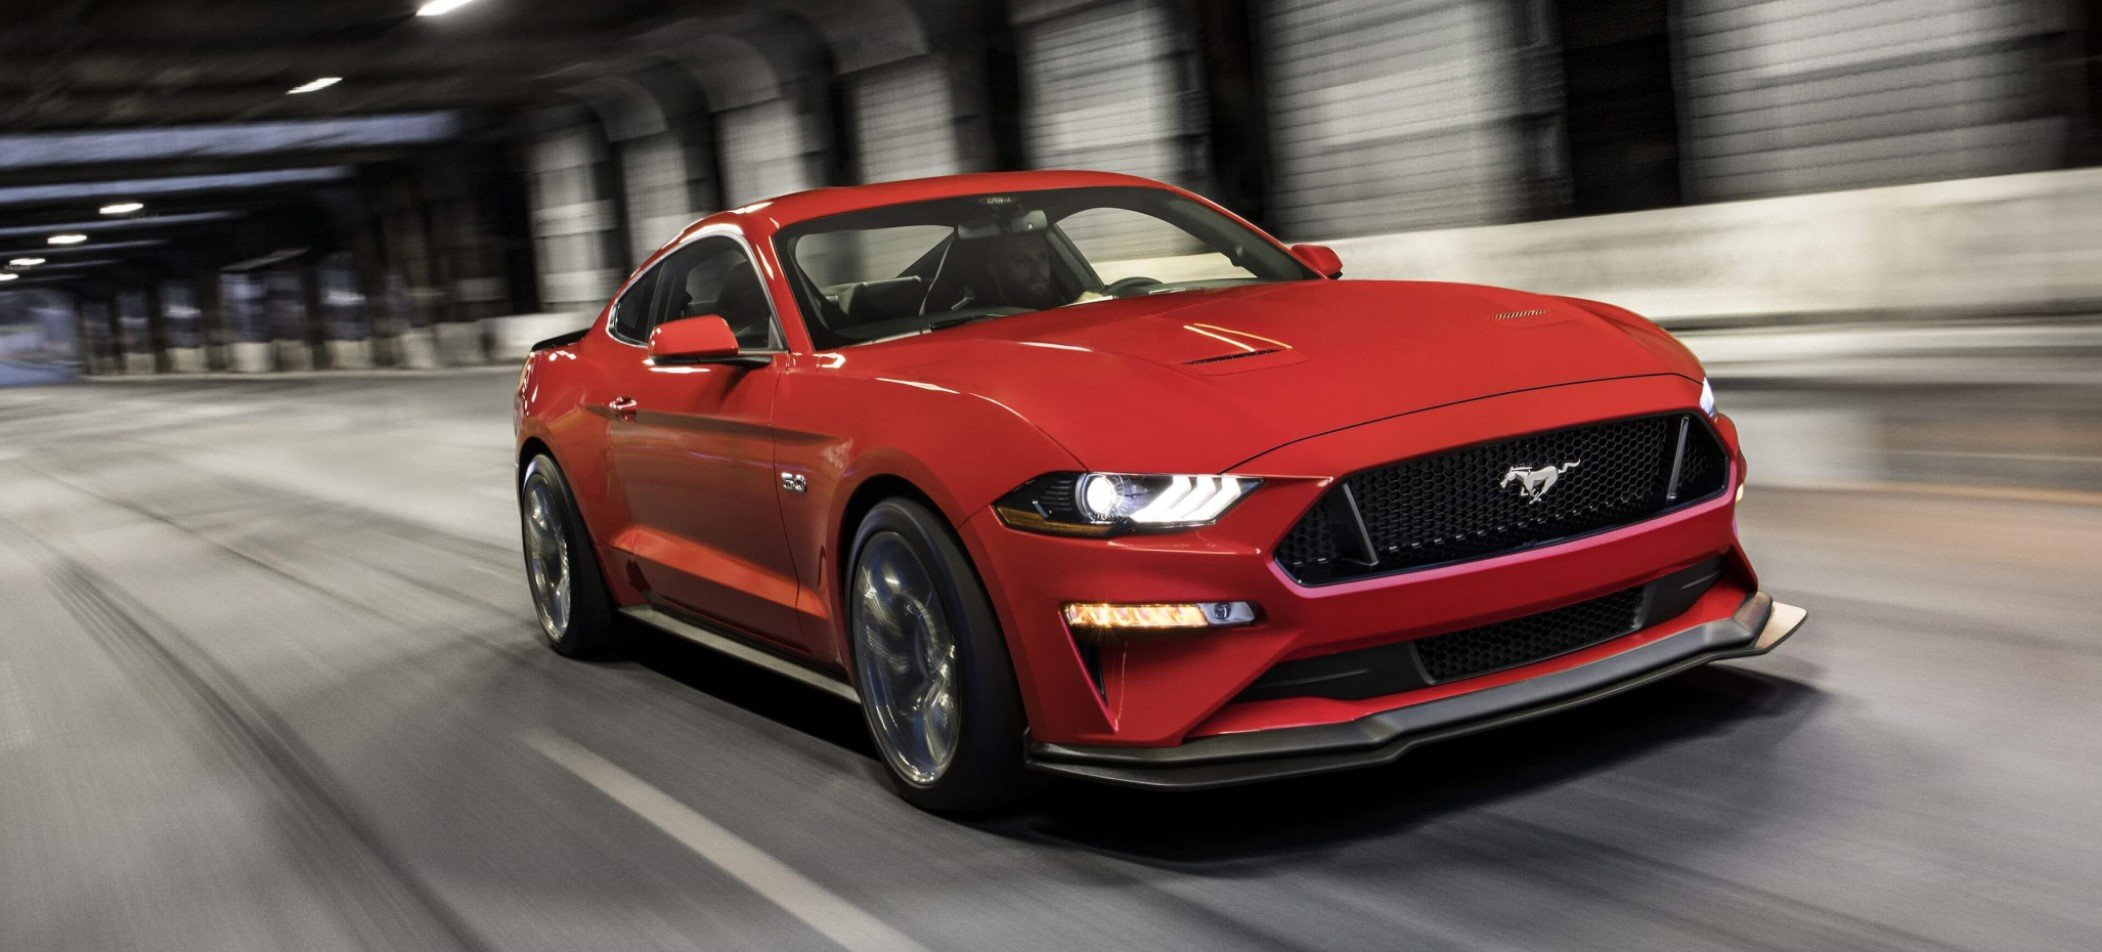 Shelor Motor Mile Christiansburg Va >> New Ford Mustang Lease Offers For Sale Christianburg Va